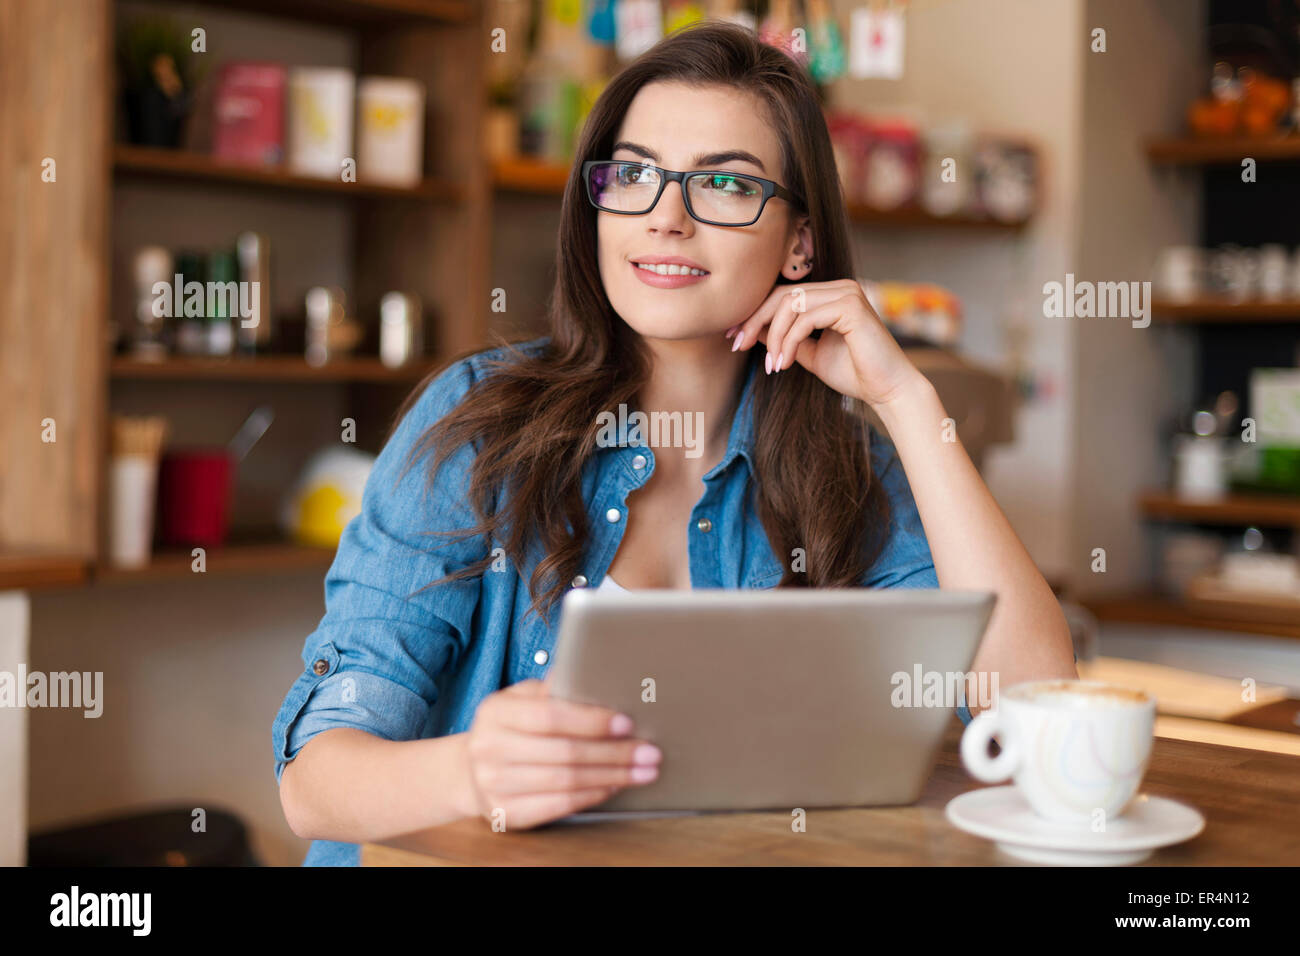 Thoughtful young woman using digital tablet at cafe. Krakow, Poland - Stock Image